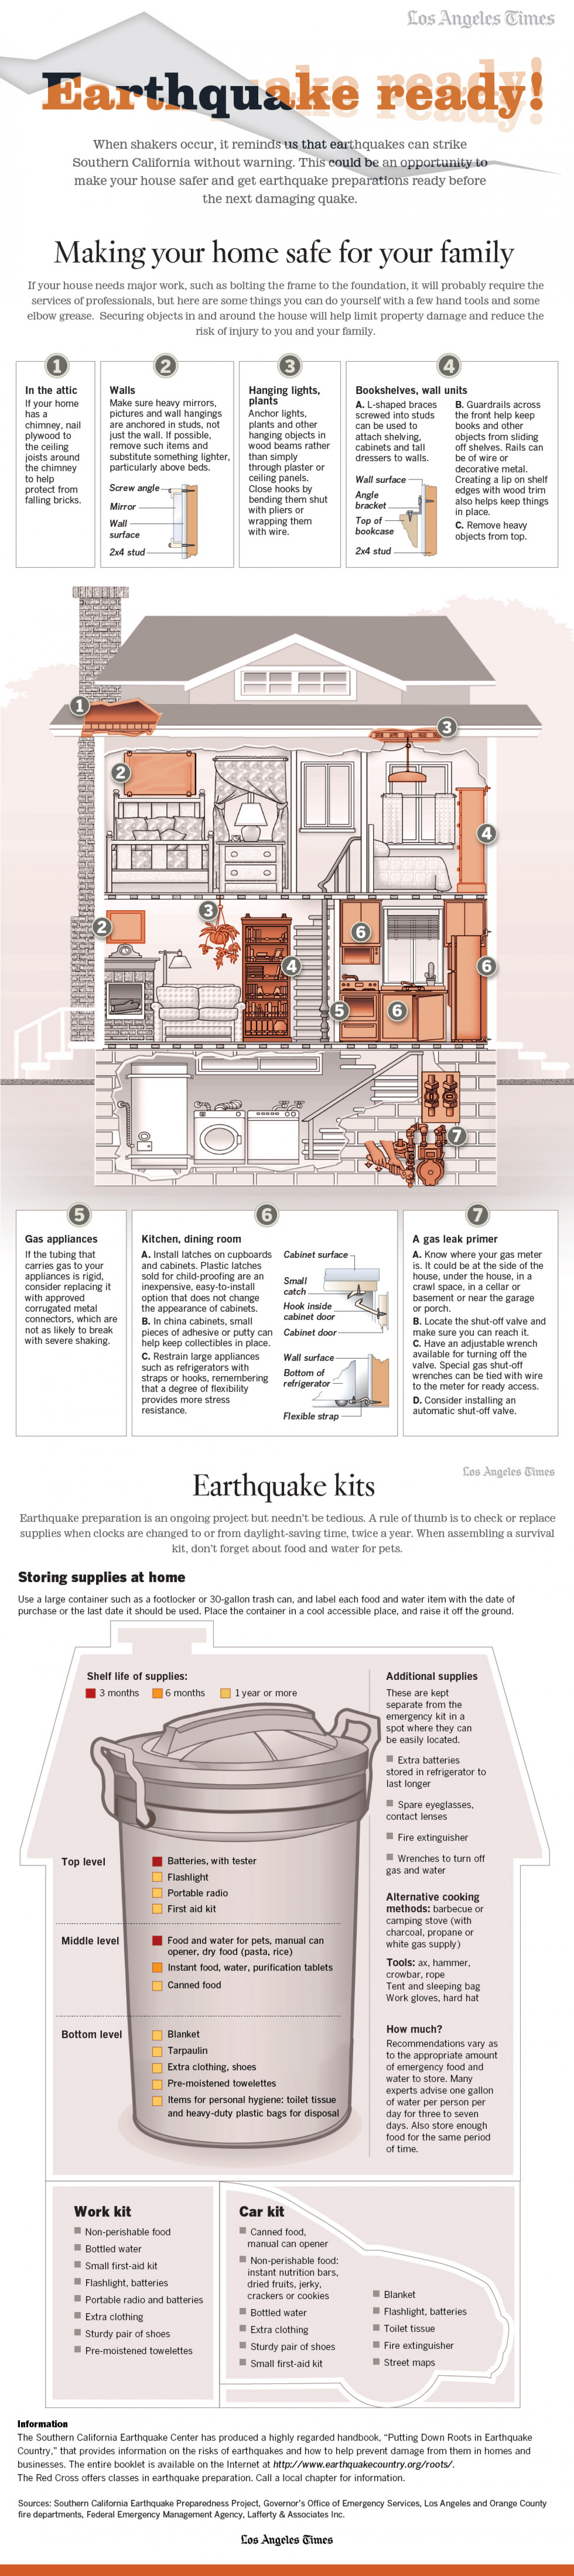 Are you ready for an Earthquake? Infographic